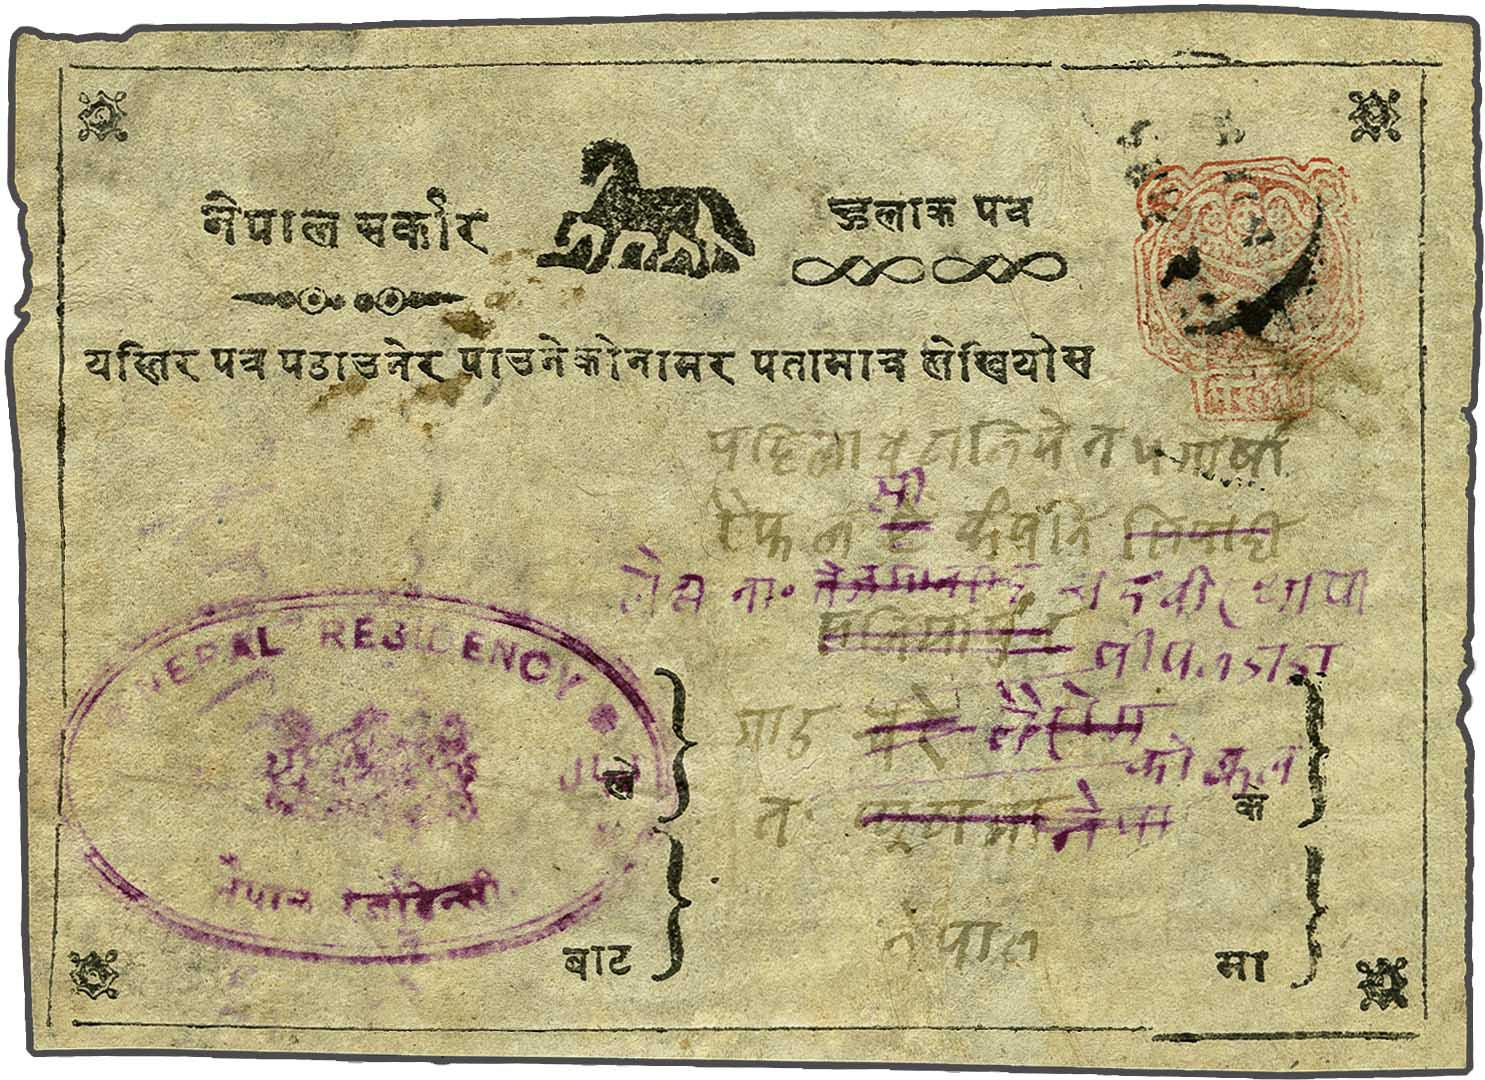 Lot 7 - Great Britain and former colonies Nepal -  Corinphila Veilingen Auction 245-246 Day 1 - Nepal - The Dick van der Wateren Collection, Foreign countries - Single lots, Picture postcards